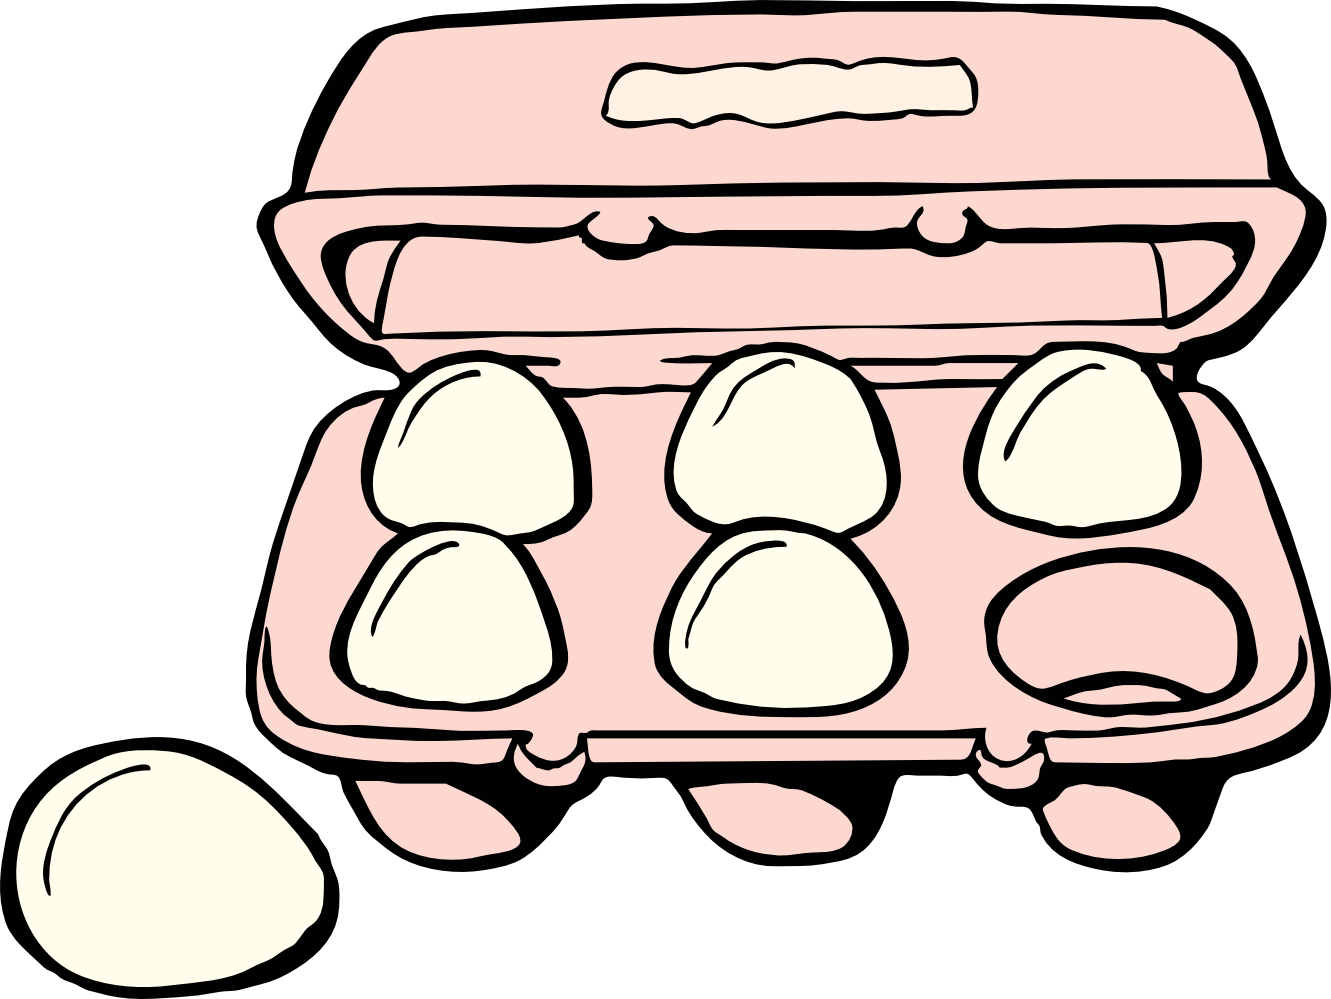 Eggs clipart egg whites. Fried at getdrawings com